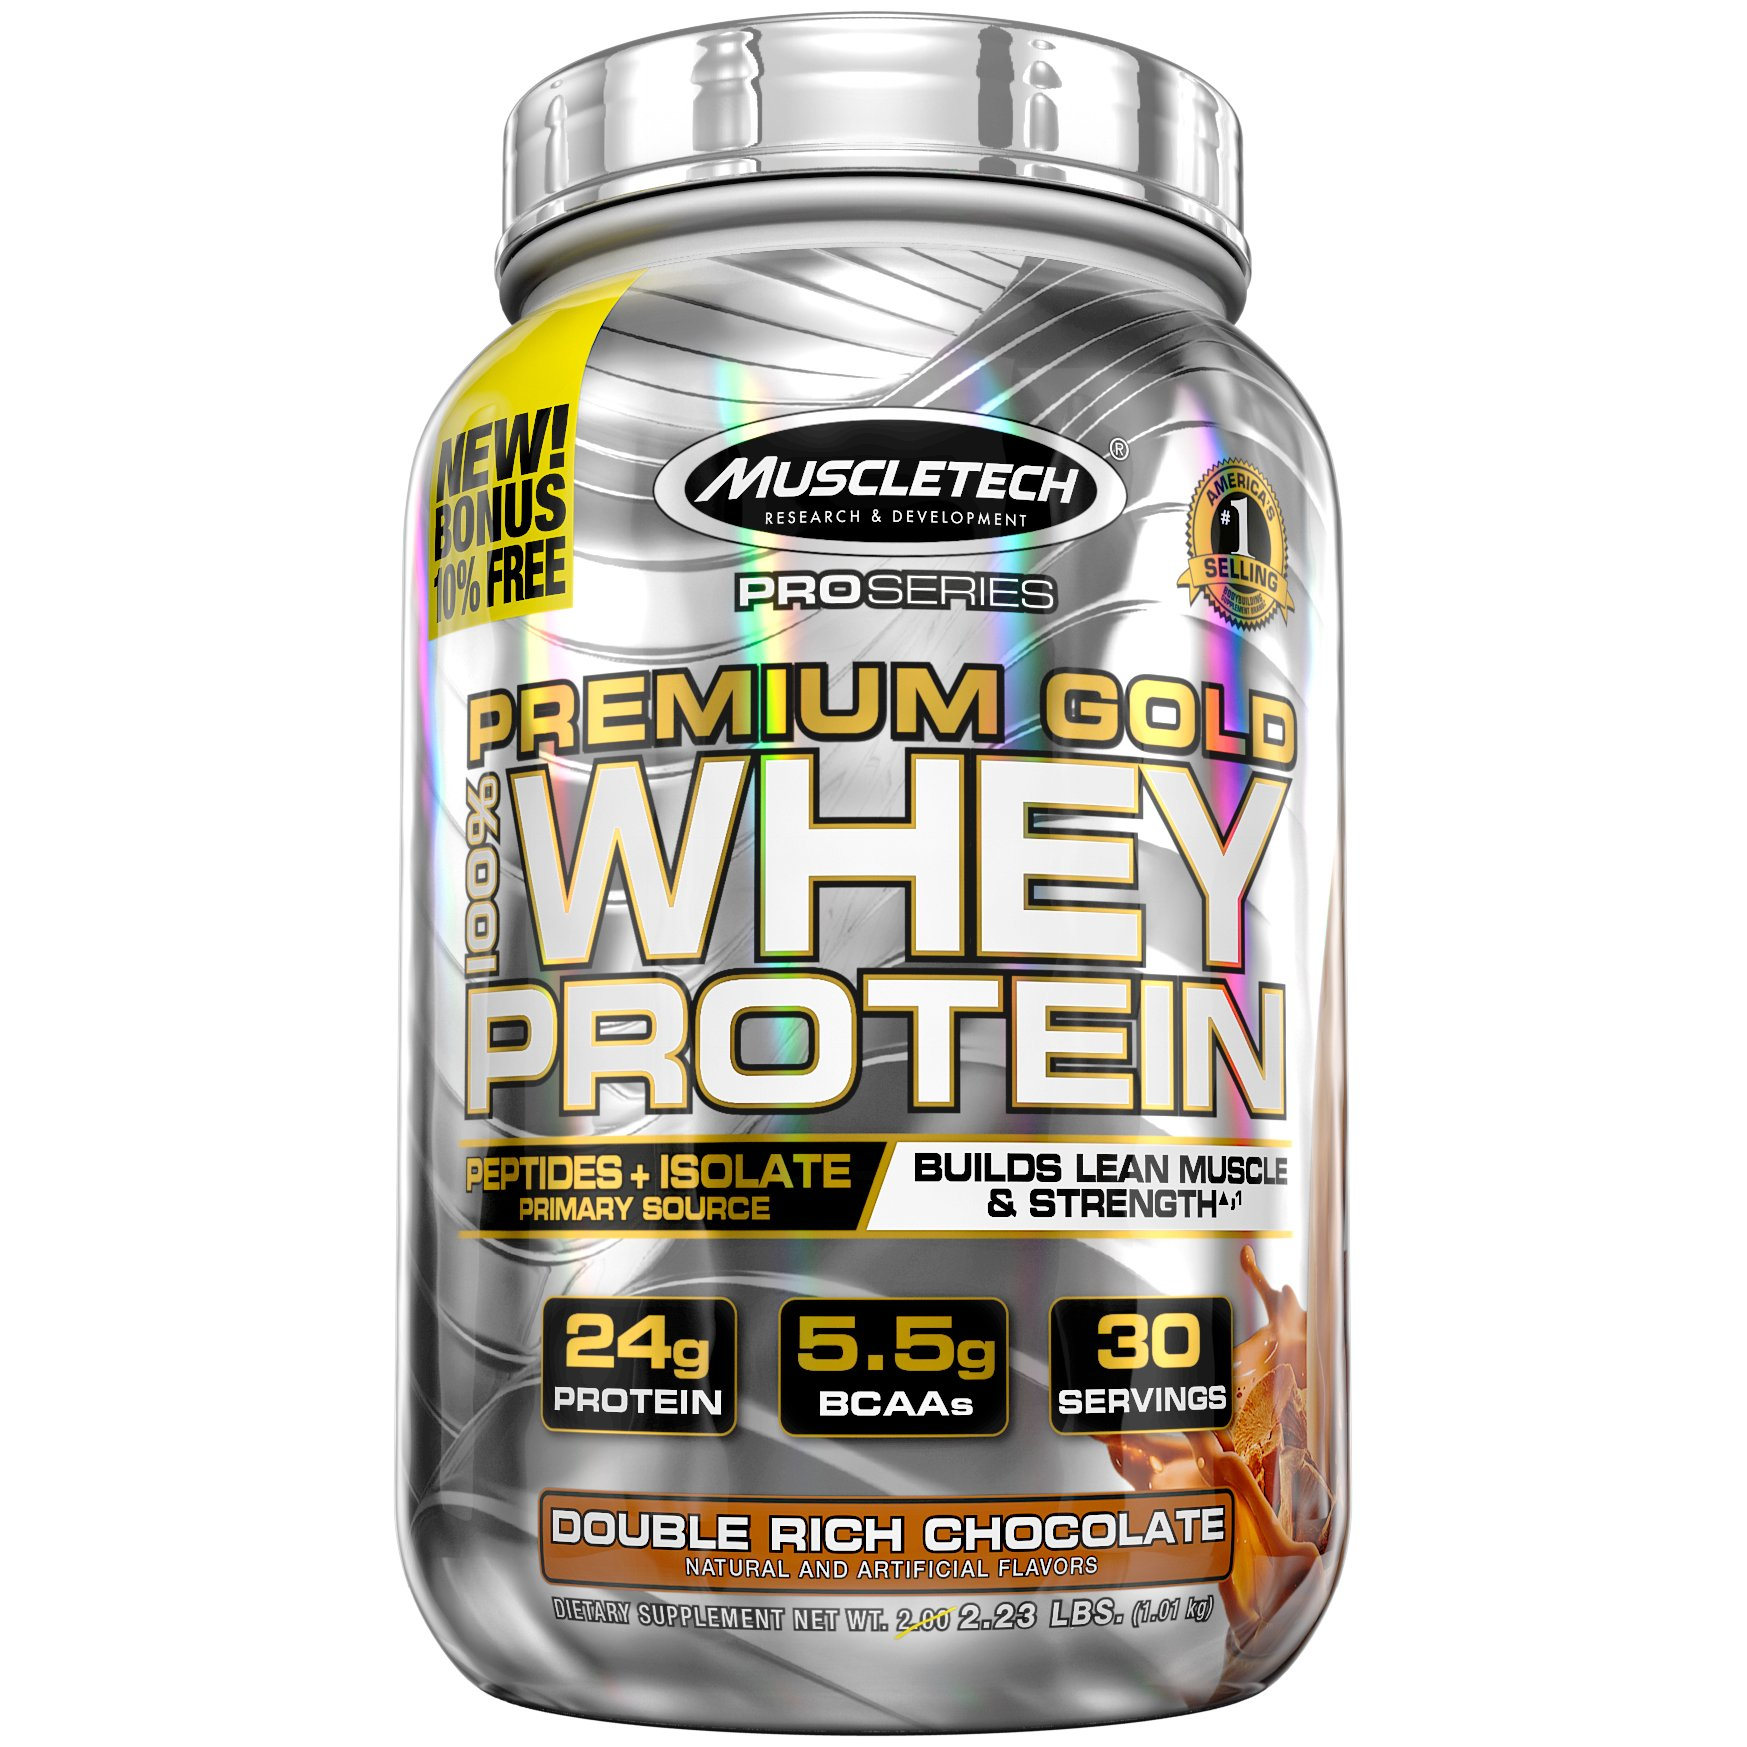 MuscleTech Premium Gold 100% Whey Protein Powder, Ultra Fast Absorbing Whey Peptides & Whey Protein Isolate, Double Rich Chocolate, 30 Servings (2.2lbs) by MuscleTech